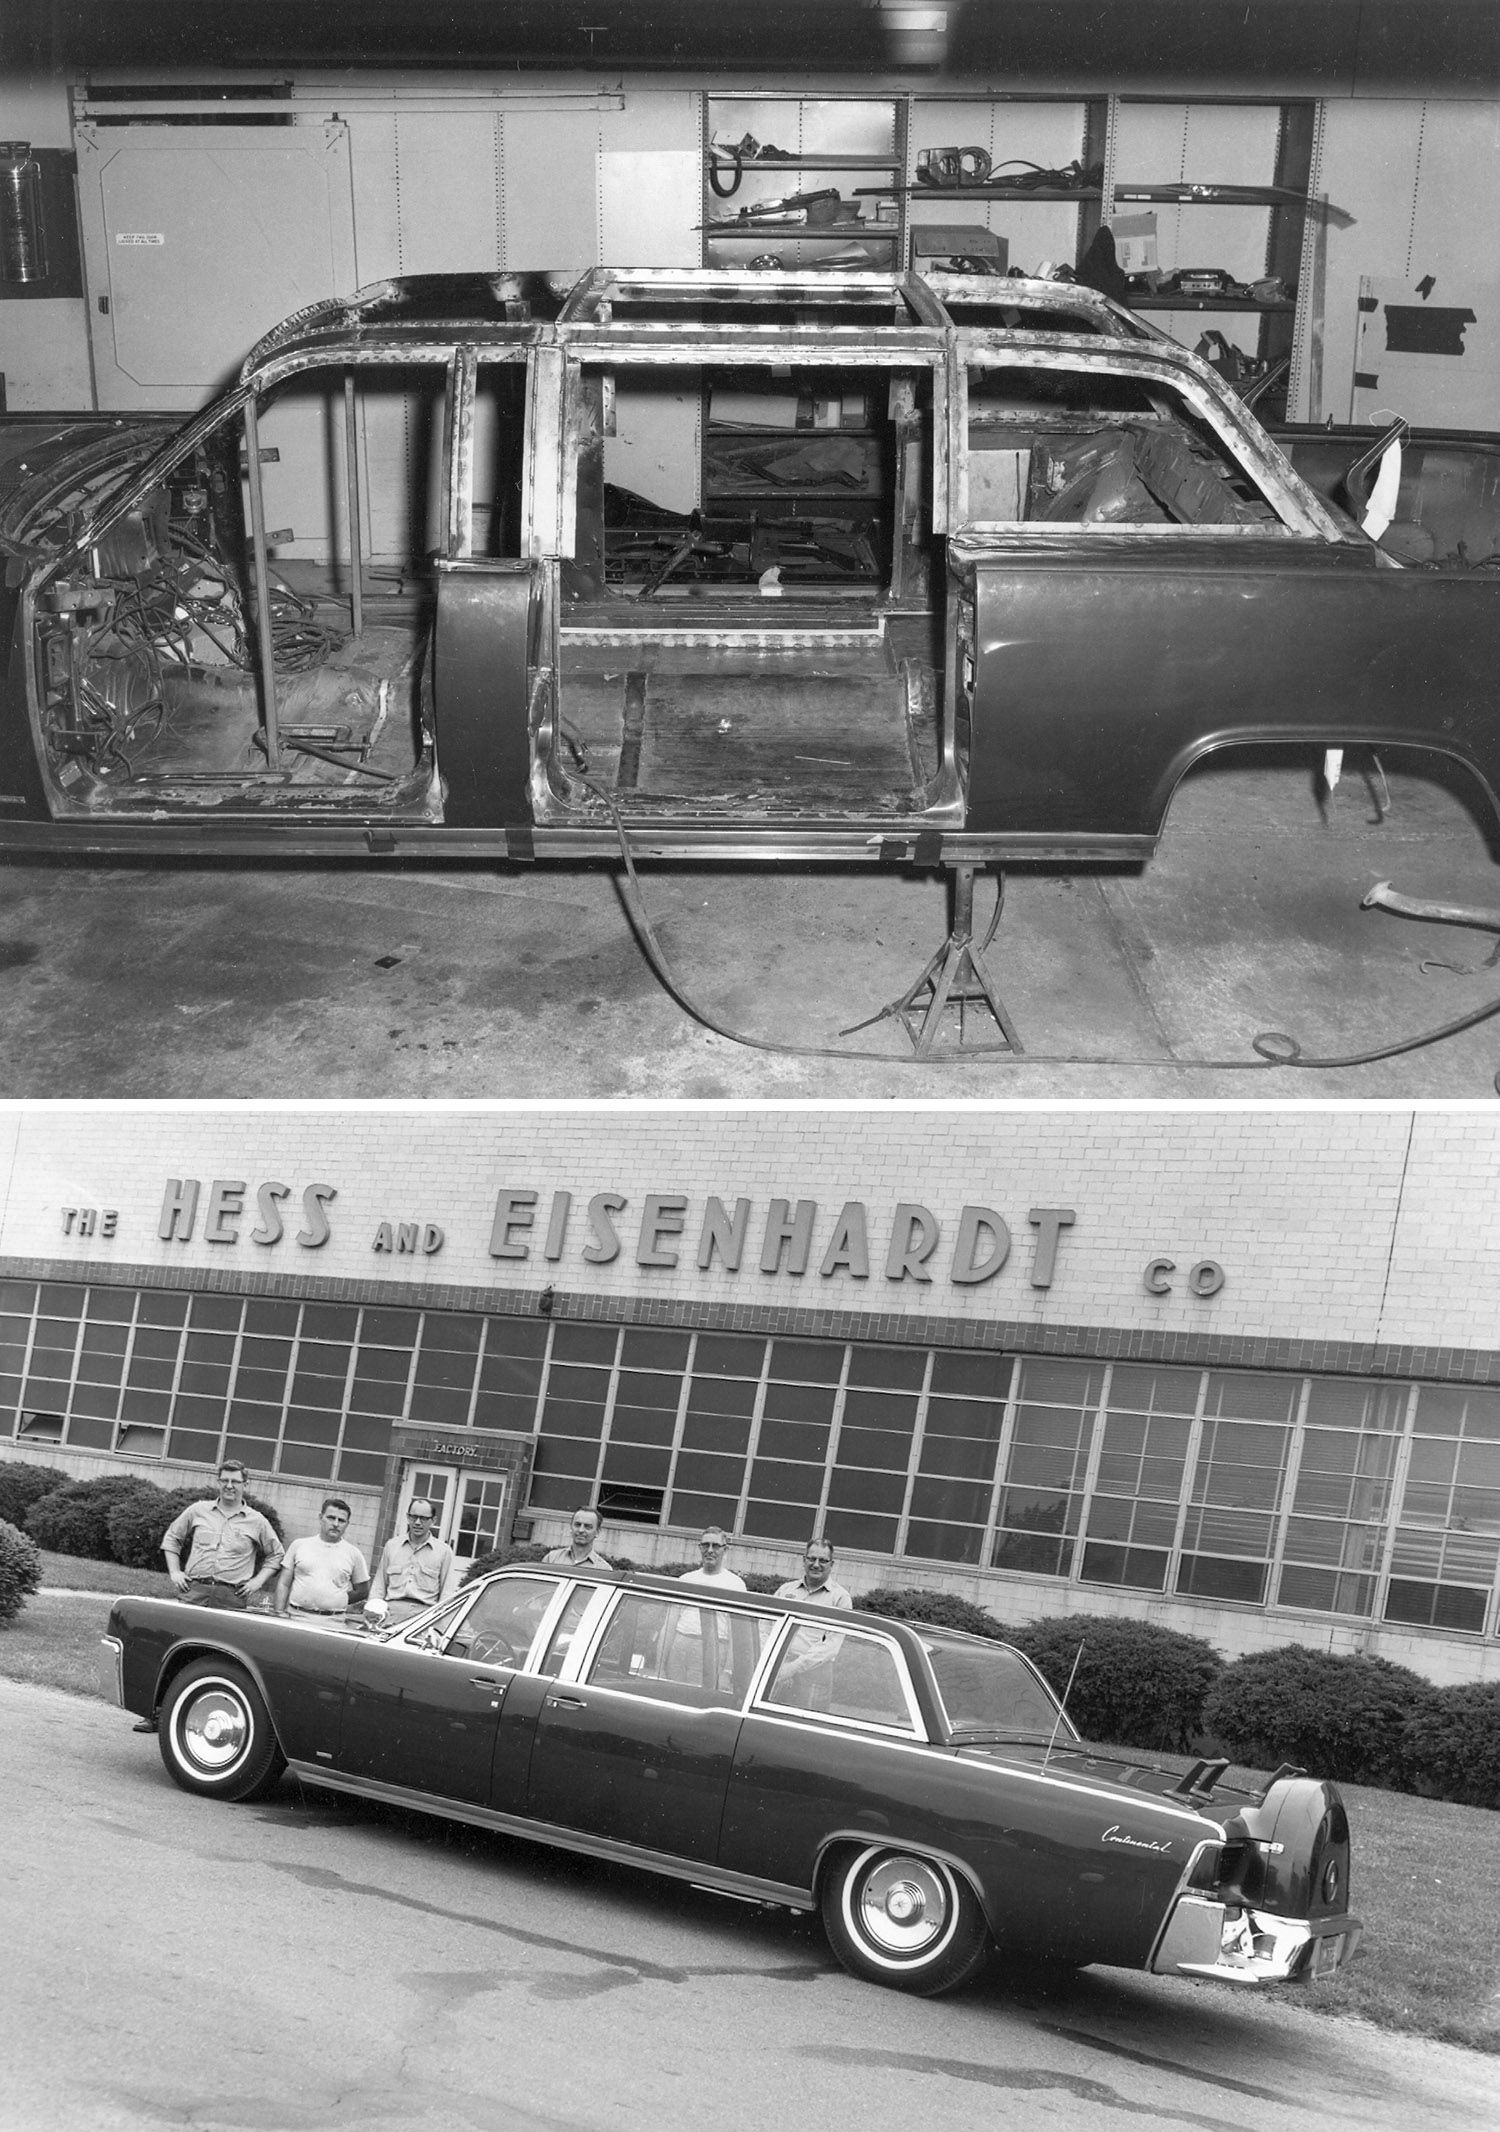 """The limousine that John F. Kennedy was assassinated in on a trip to Dallas was sent back to Ford and partner Hess & Eisenhardt to rebuild and improve its safety and design. The project started around Dec. 1963 and was dubbed the """"Quick Fix."""" These photos show the process and the rebuilt car on display in front of Hess & Eisenhardt's headquarters in Cincinnati, Ohio before it was sent back to the White House."""